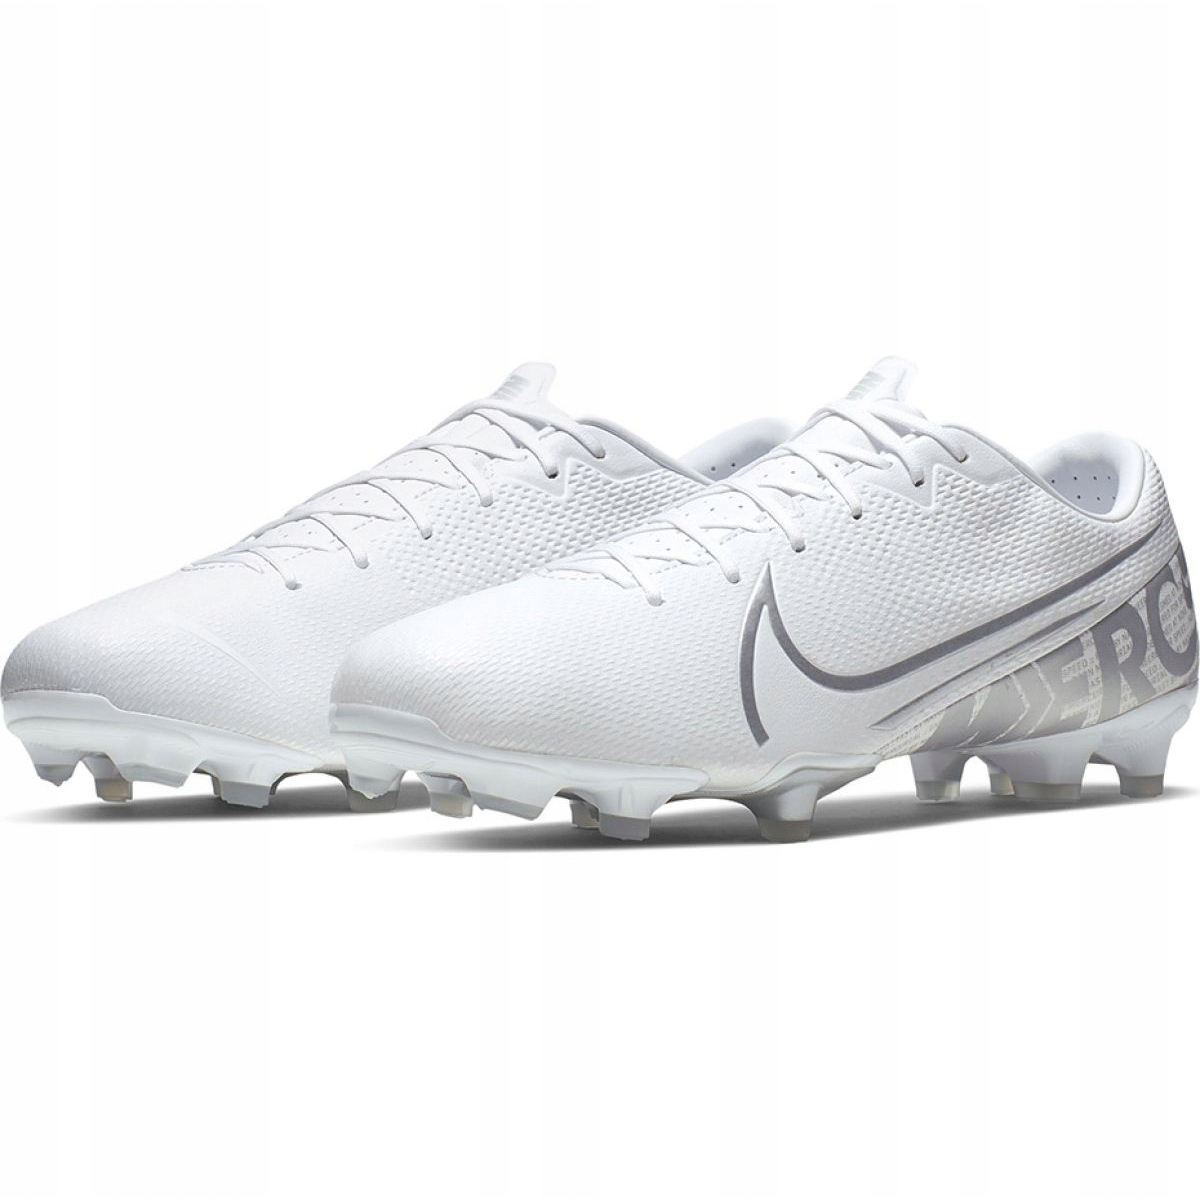 shoes white football about Vapor MG white FG Details Nike 13 M AT5269 Academy 100 Mercurial 8wnPkONX0